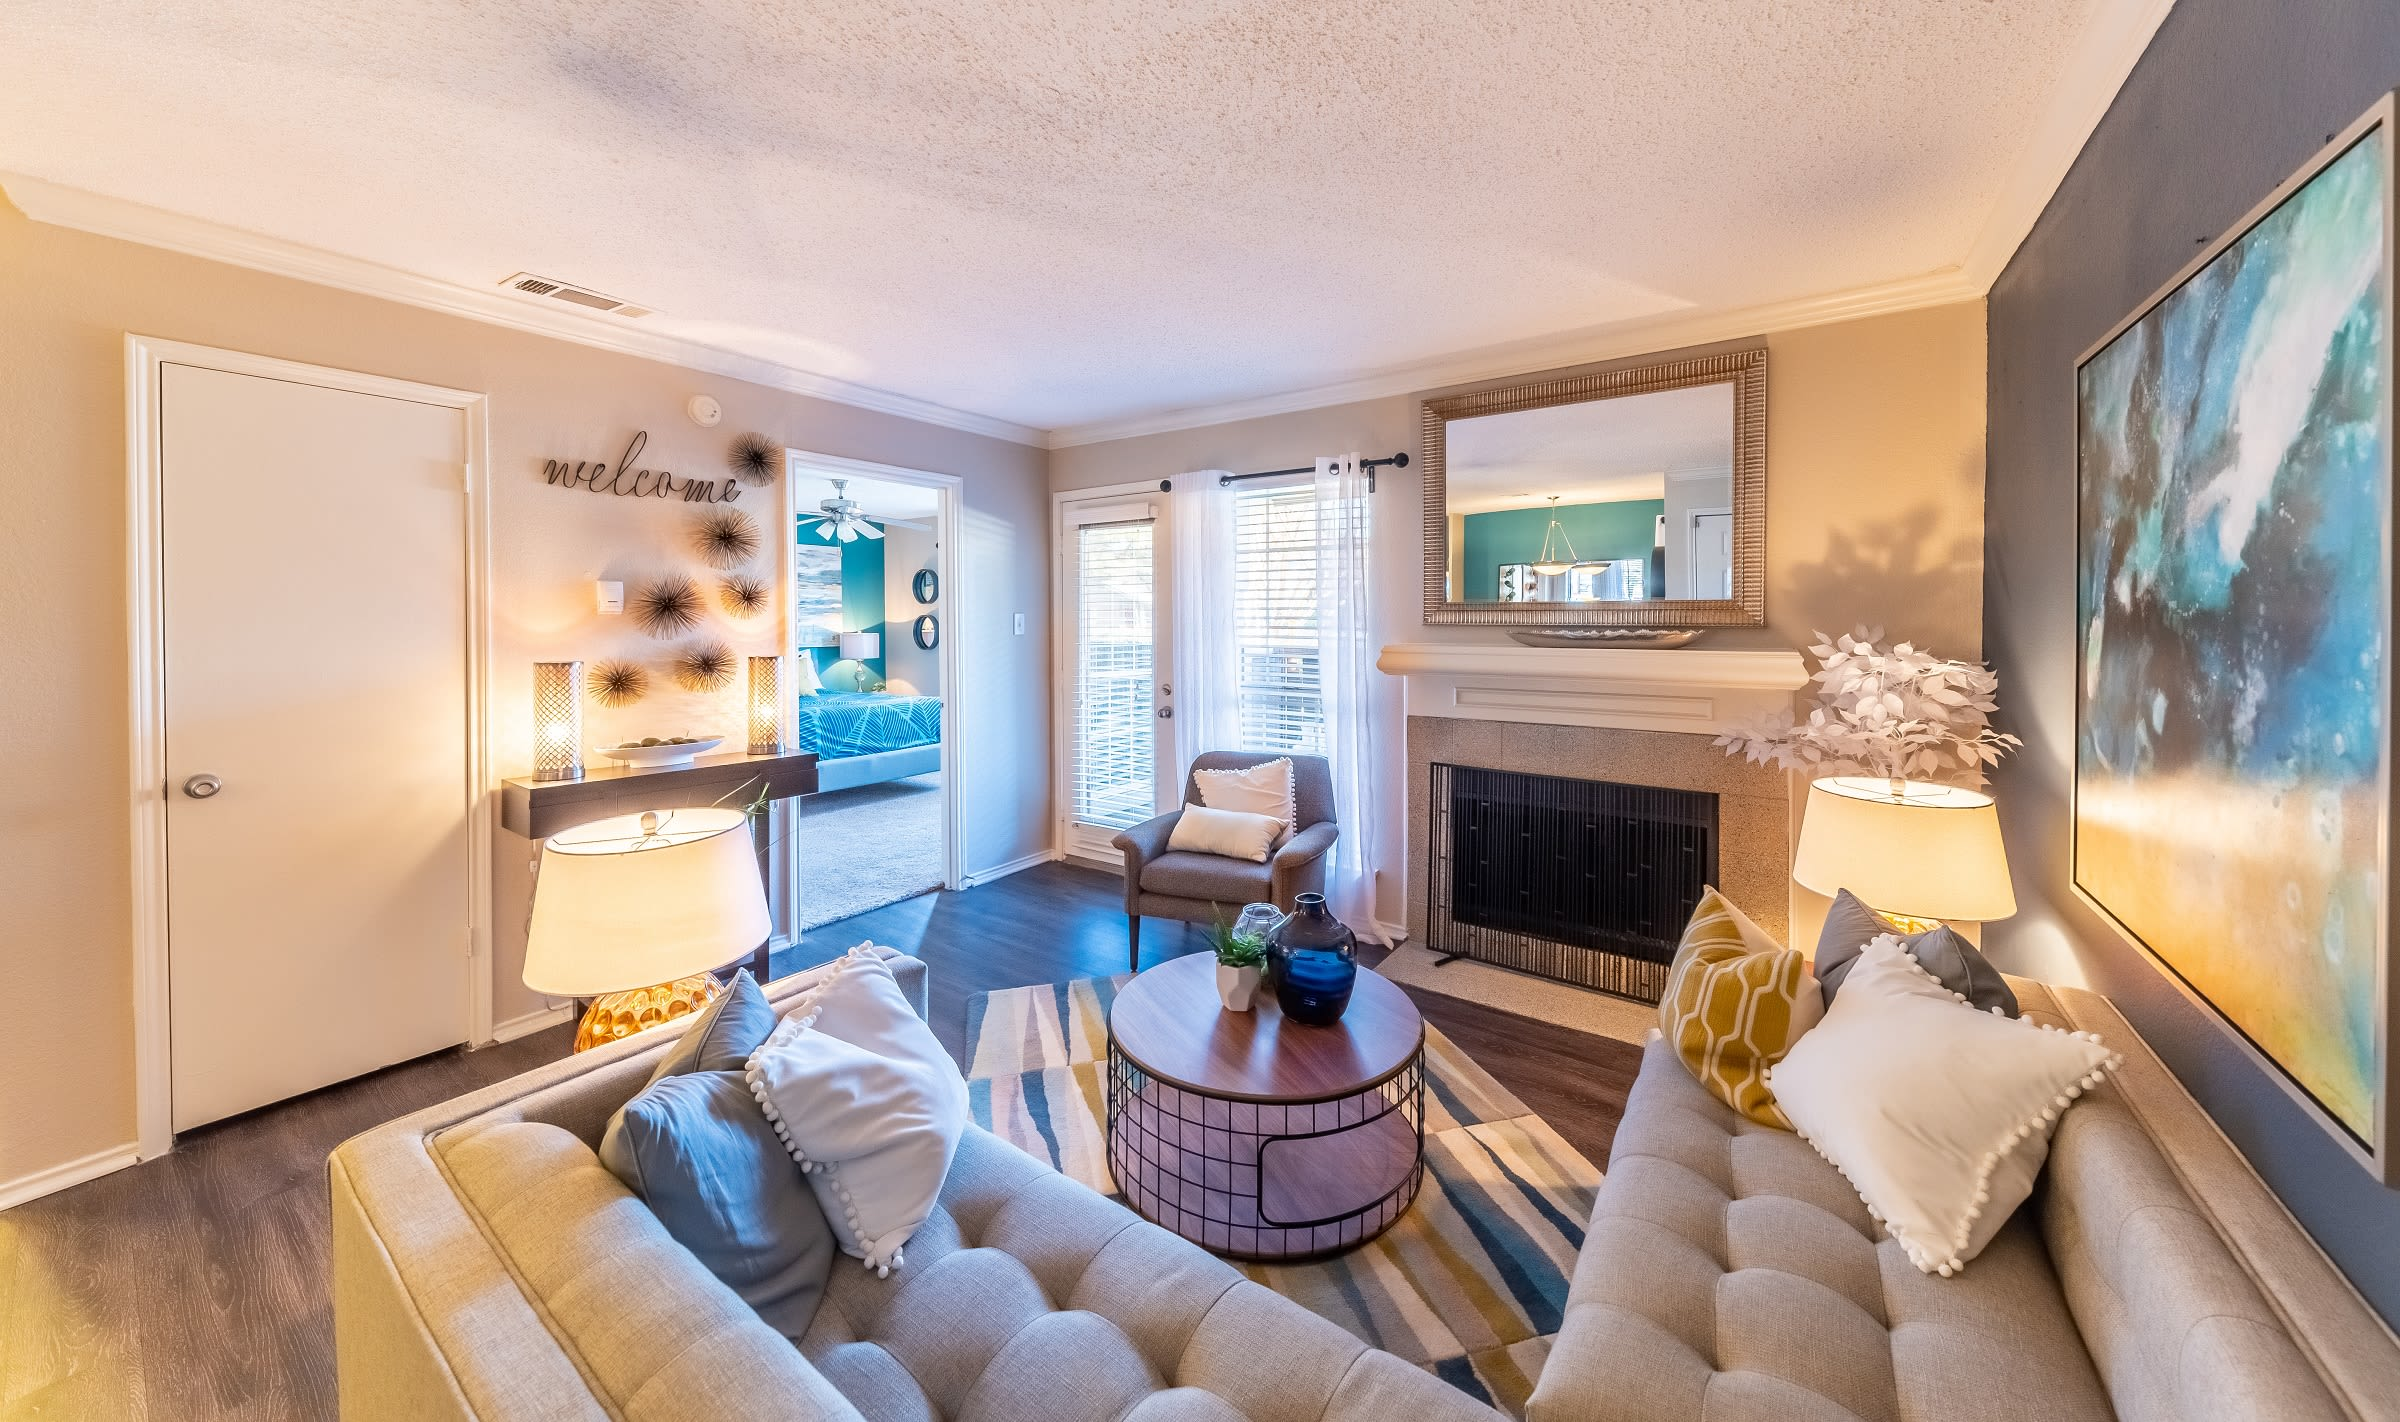 Living room with modern decor at Village Green of Bear Creek in Euless, Texas